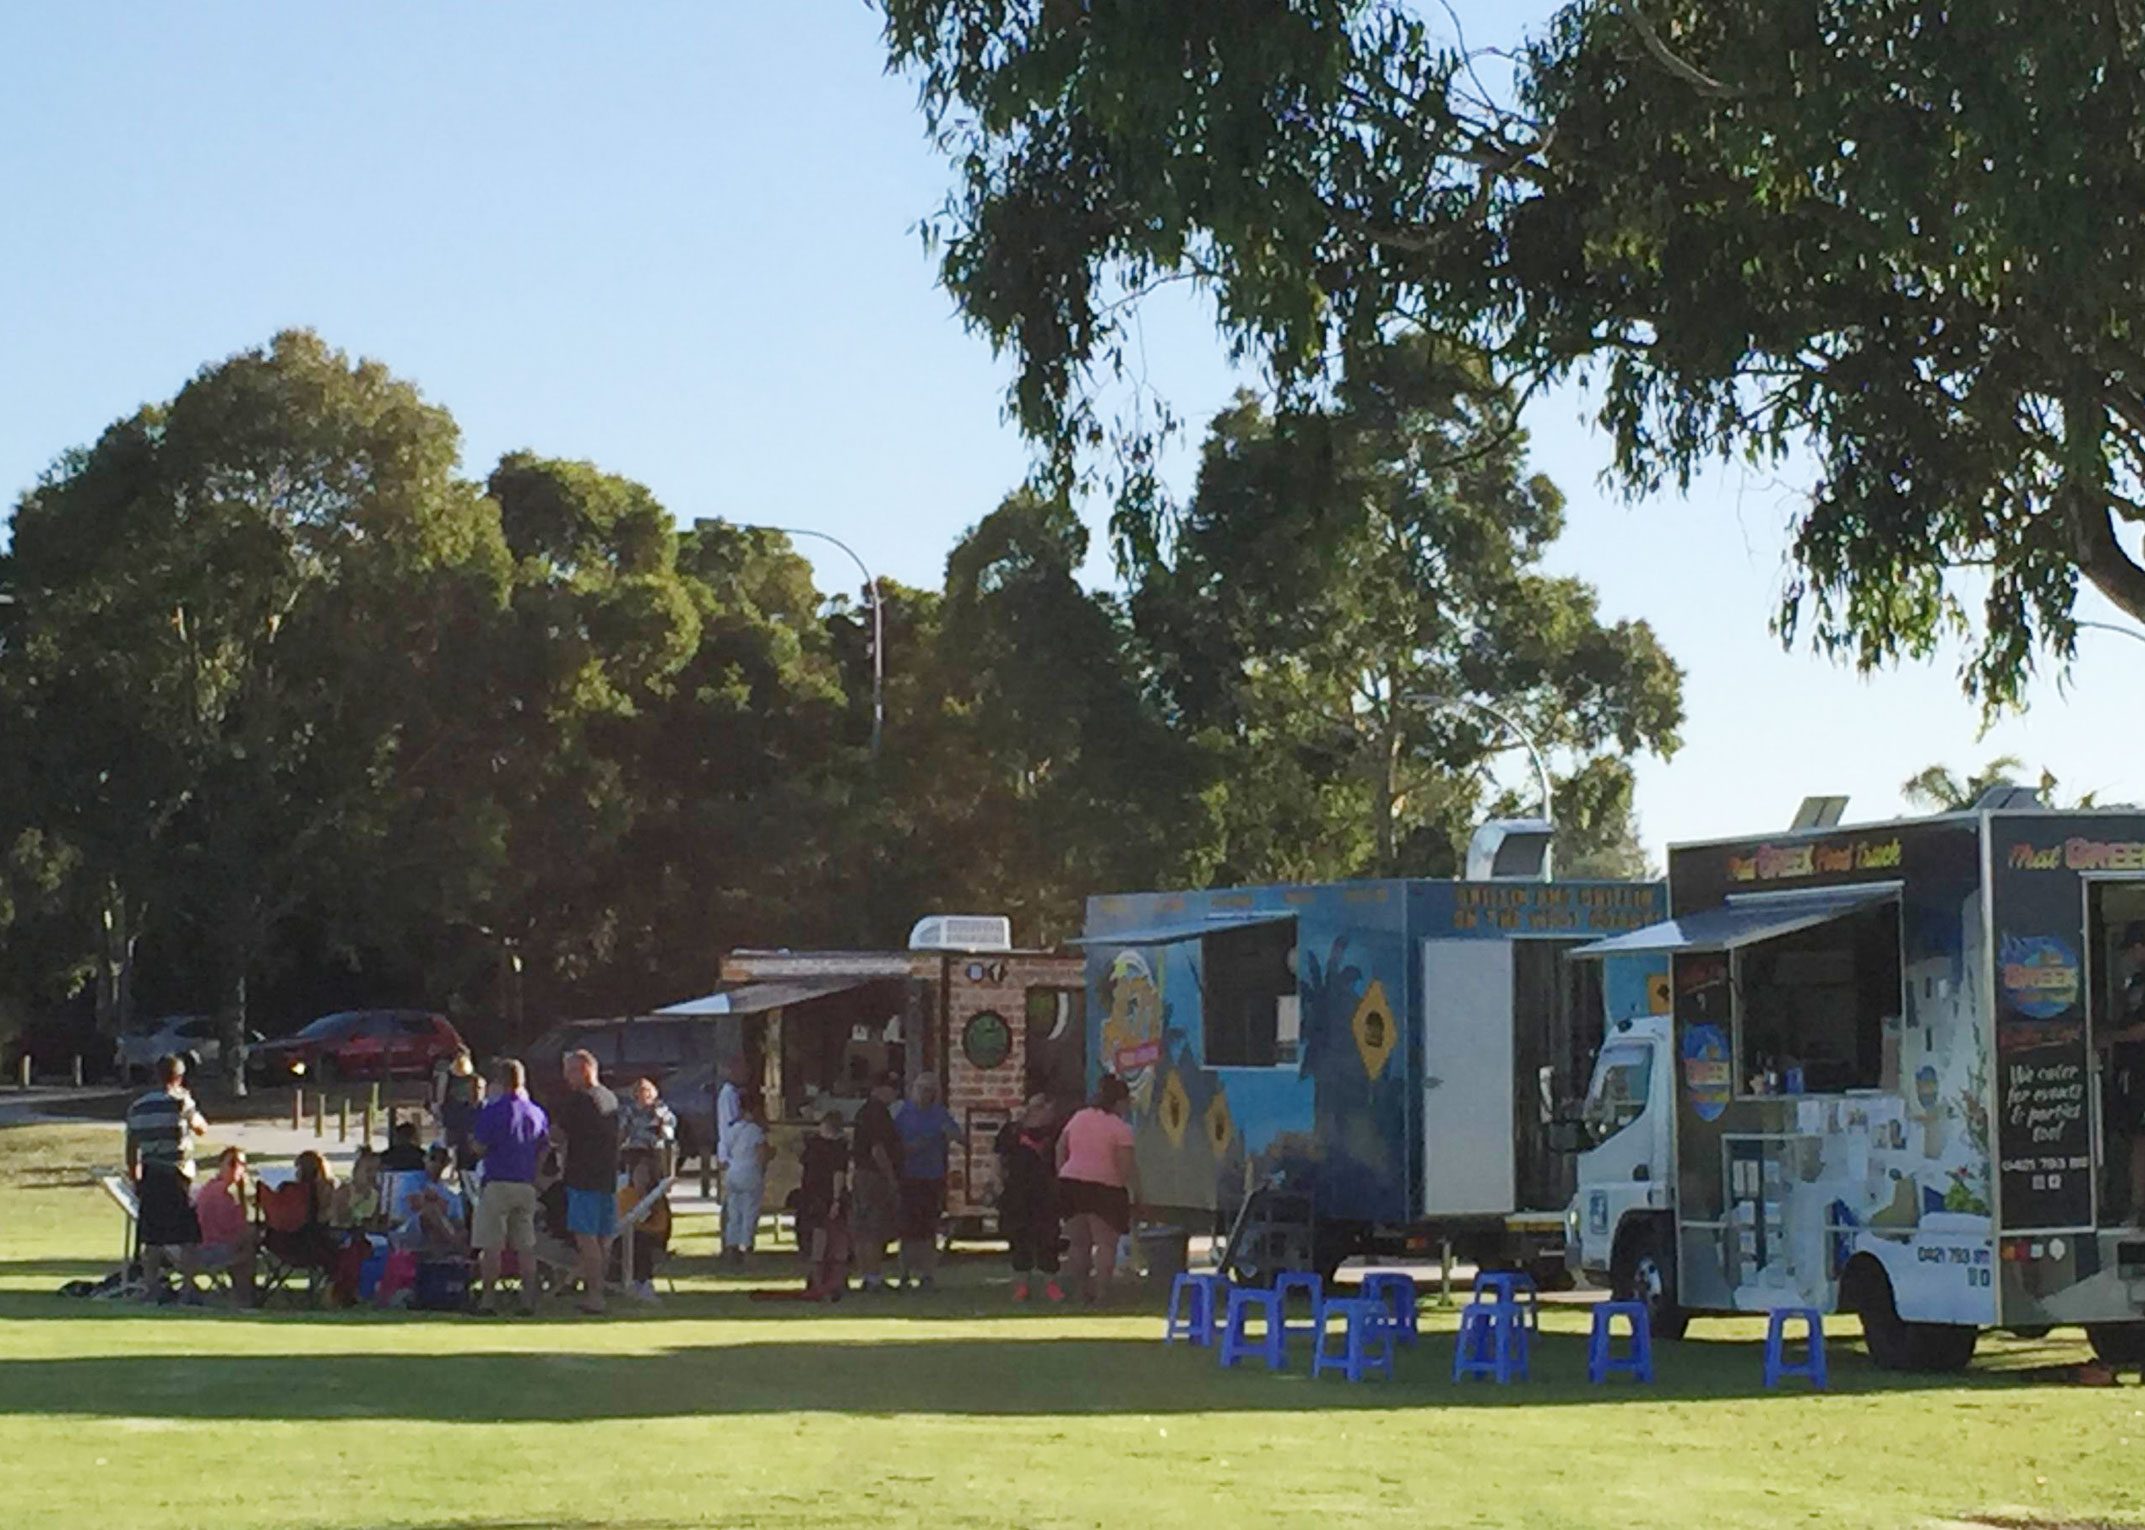 The City of Wanneroo's trial of food trucks in parks has proven to be popular with families.